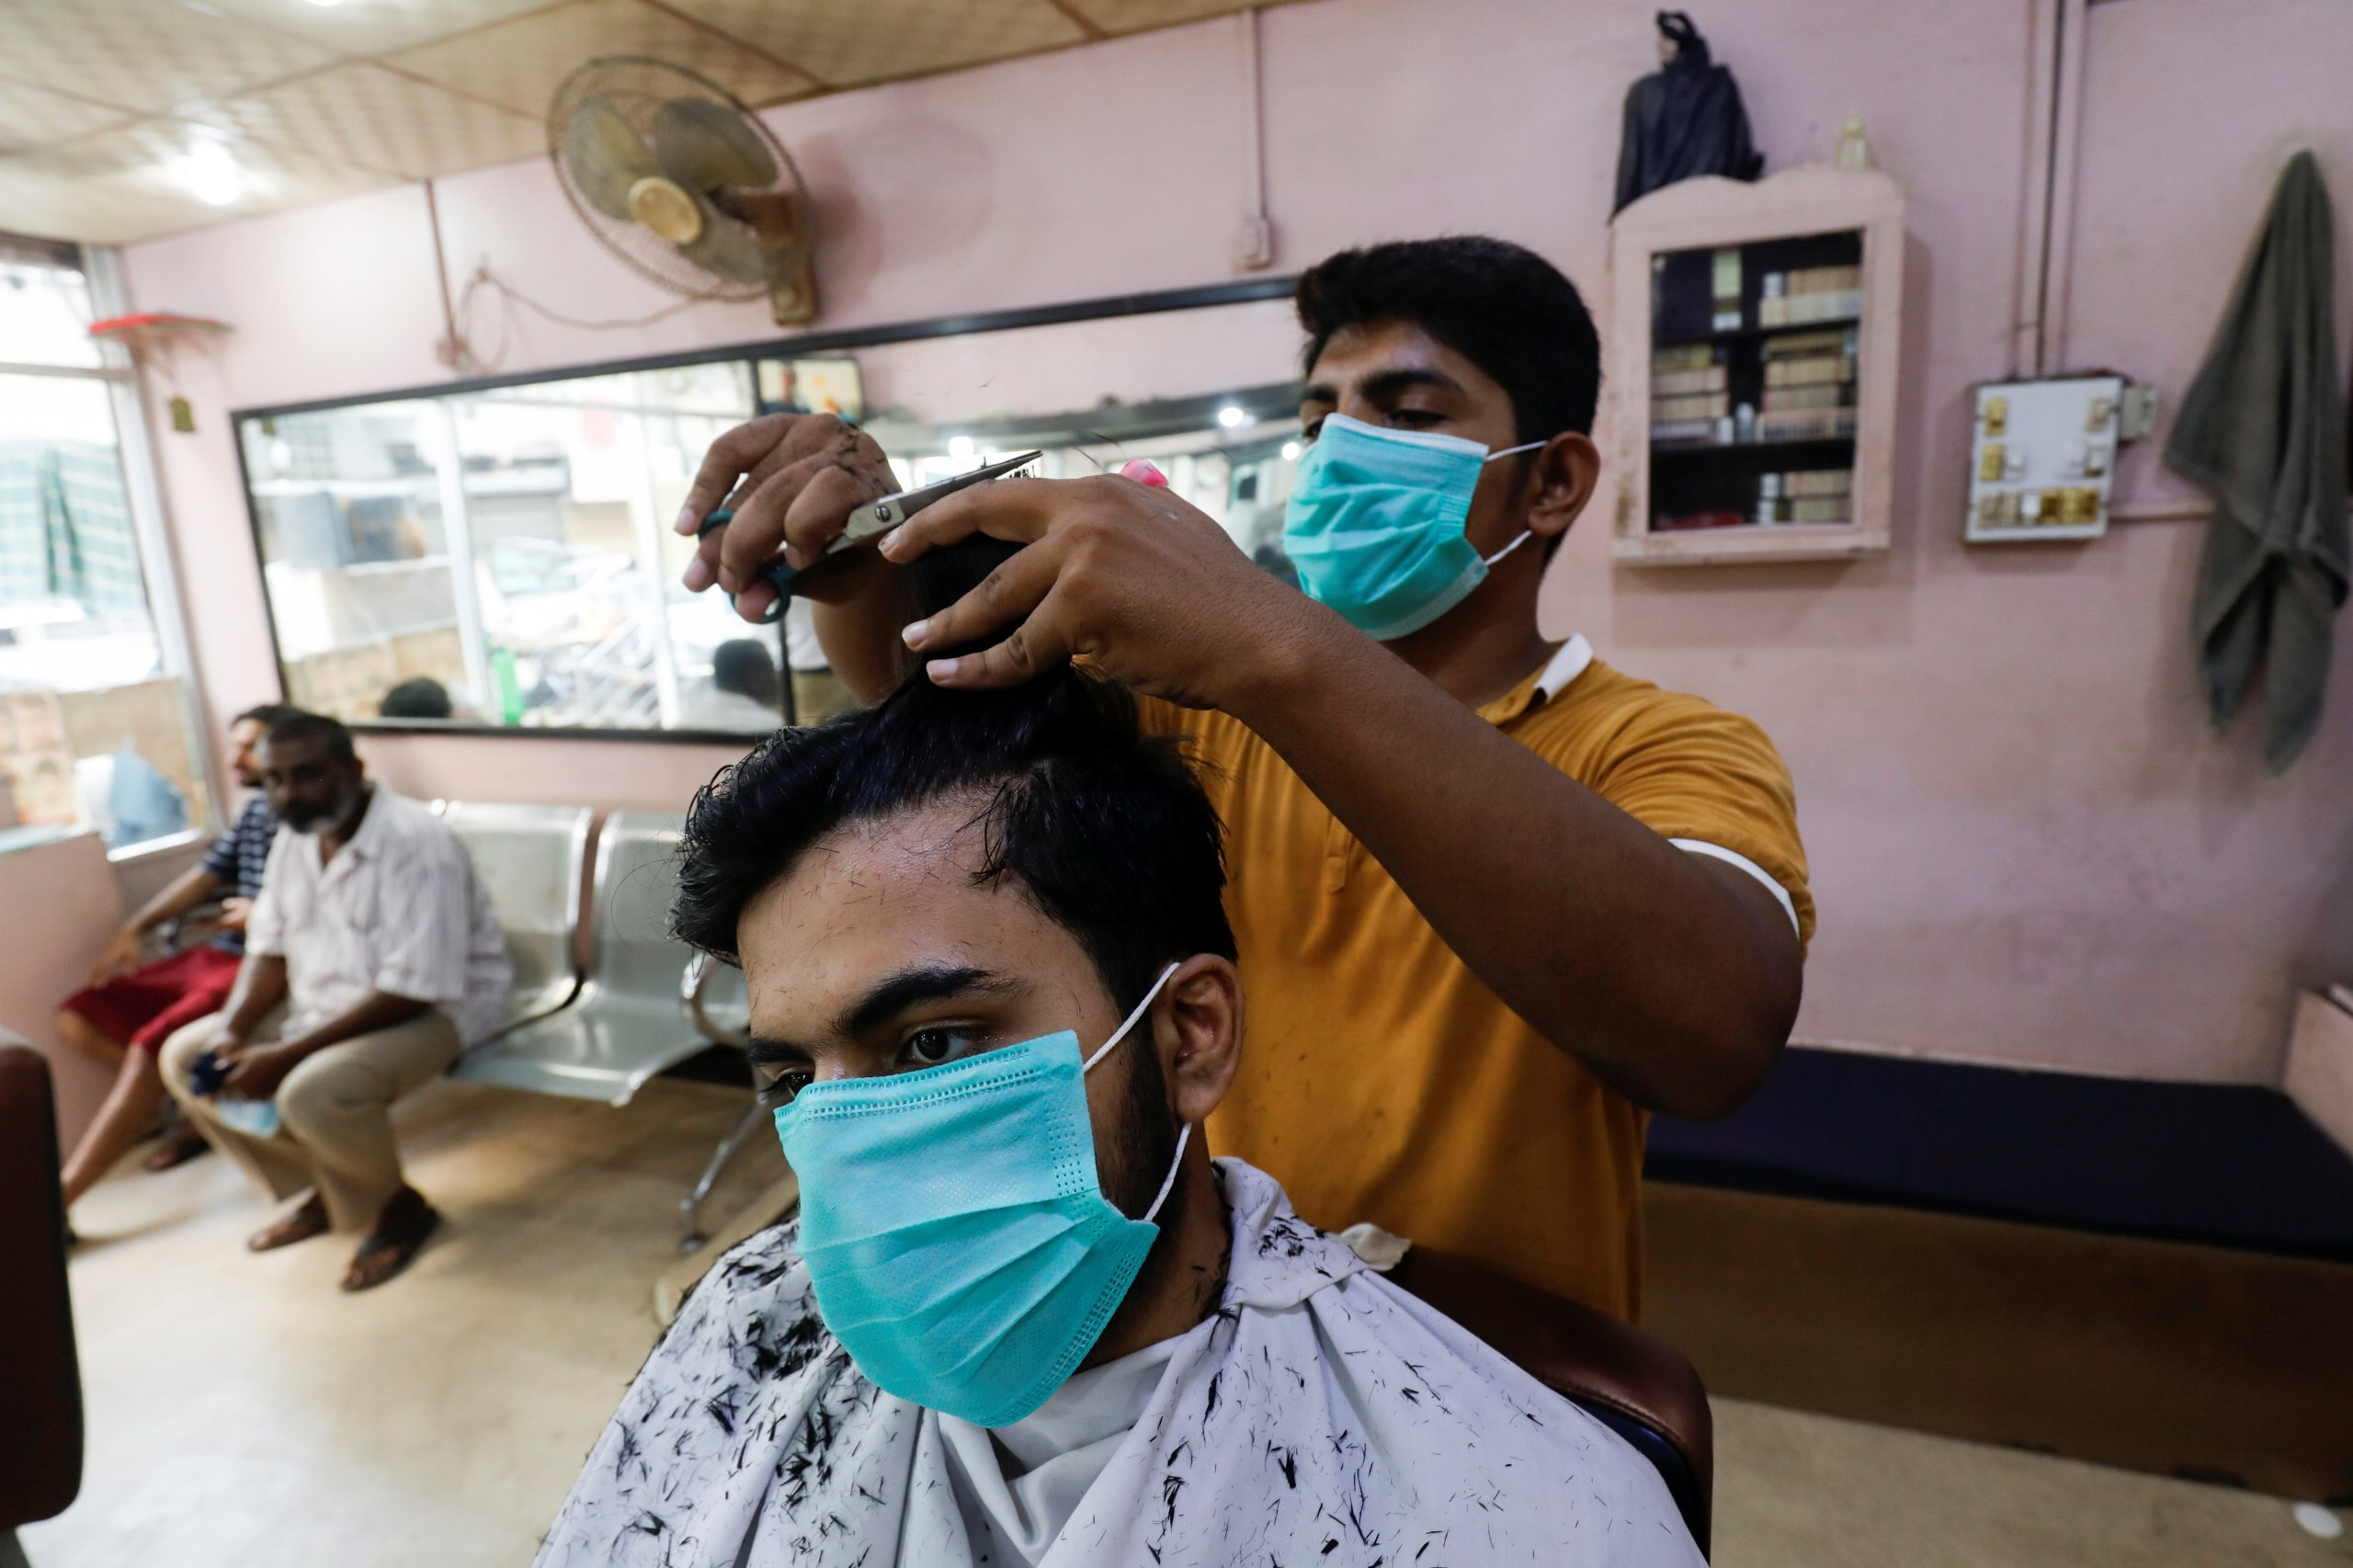 A man wears a protective mask as he has a haircut at a barbershop, after Pakistan lifted lockdown restrictions, as the coronavirus disease (COVID-19) outbreak continues, in Karachi, Pakistan August 10, 2020. REUTERS/Akhtar Soomro